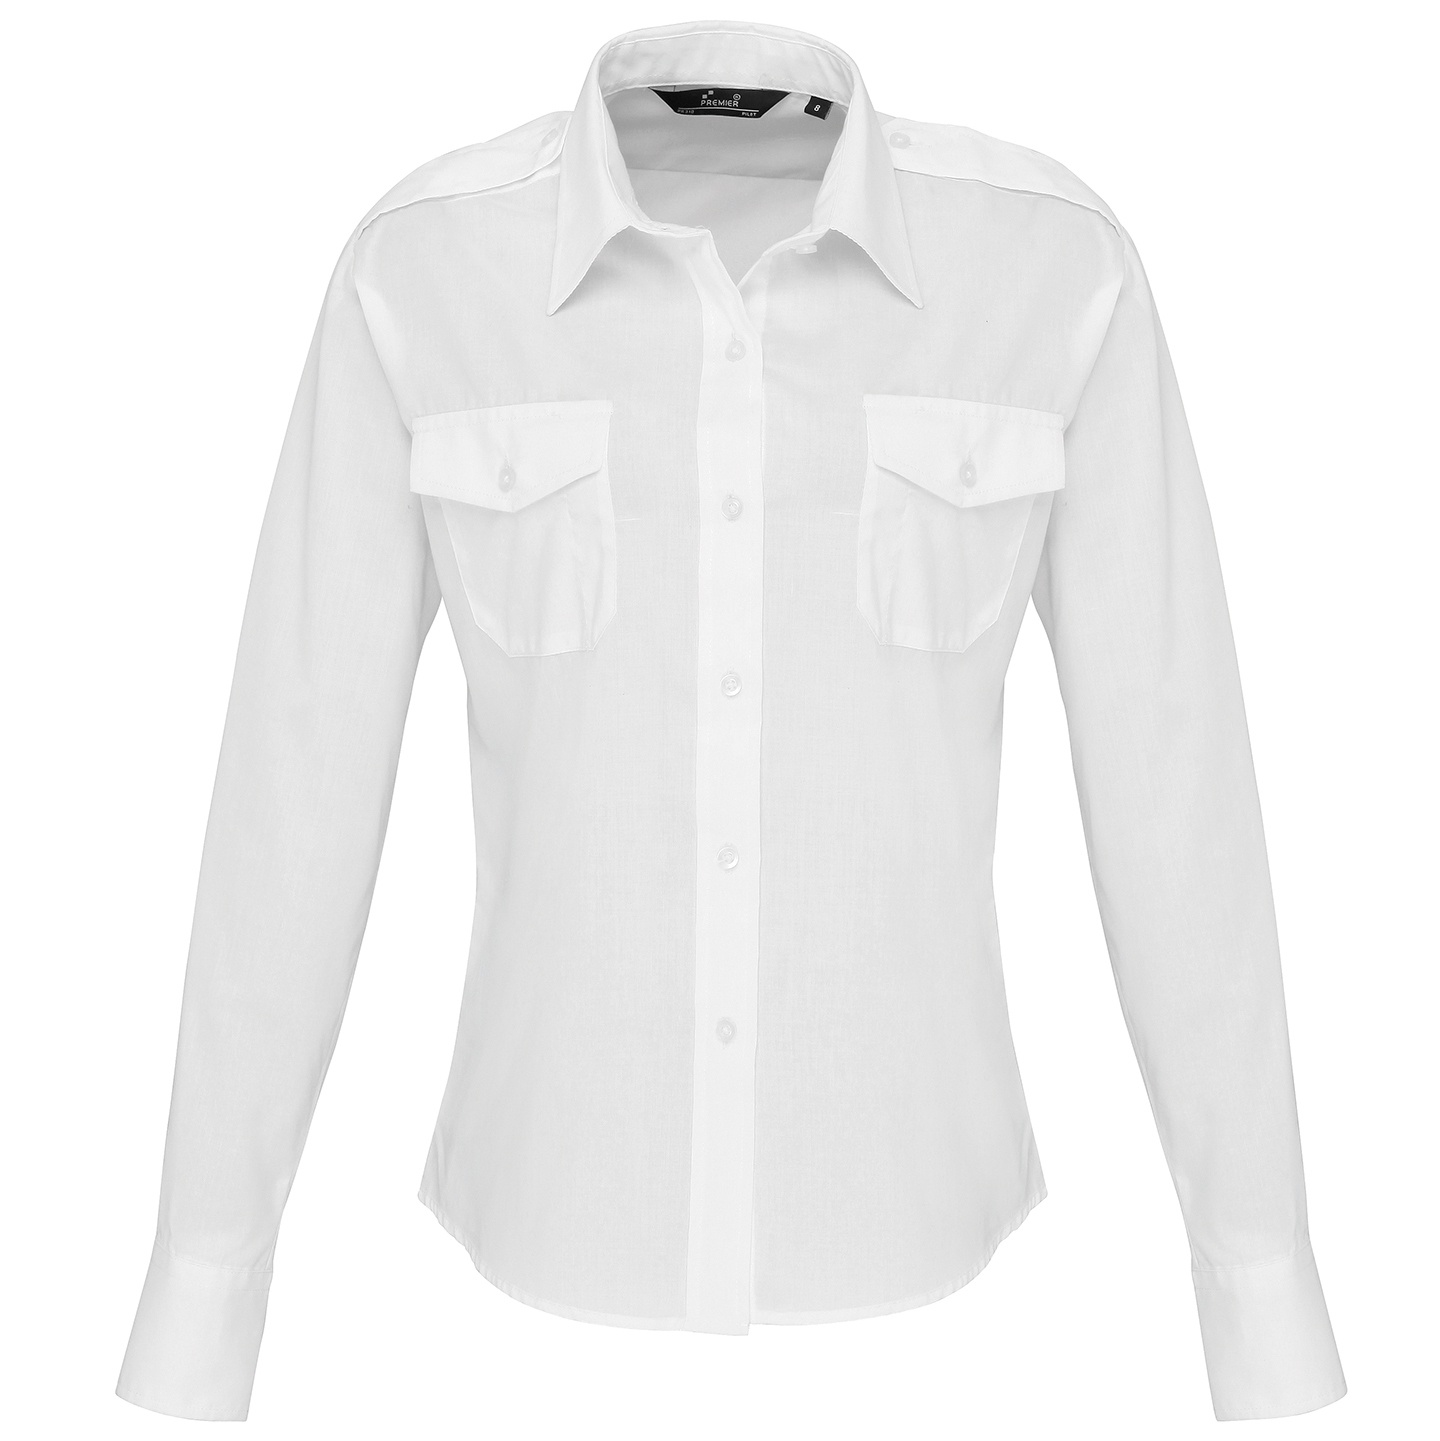 Women/'s Premier Long Sleeve Pilot Shirt Chest Pockets Stiffened Collar Size 8-26